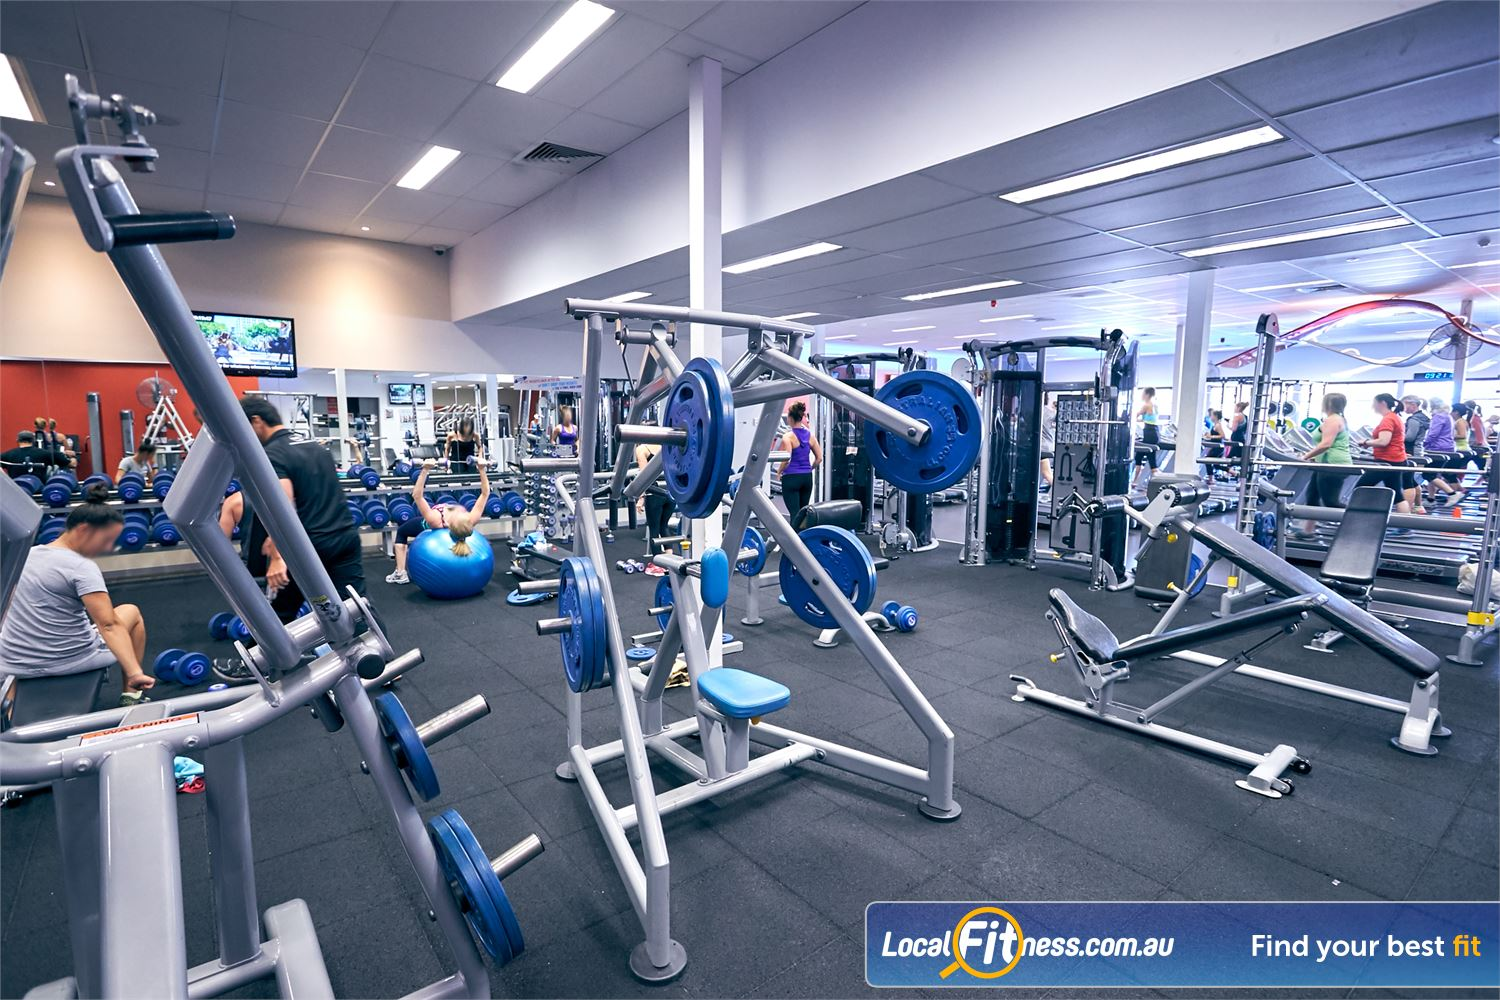 Goodlife Health Clubs Cross Roads Near Hawthorn Our Westbourne Park gym boasts some of South Australia's best fitness facilities.